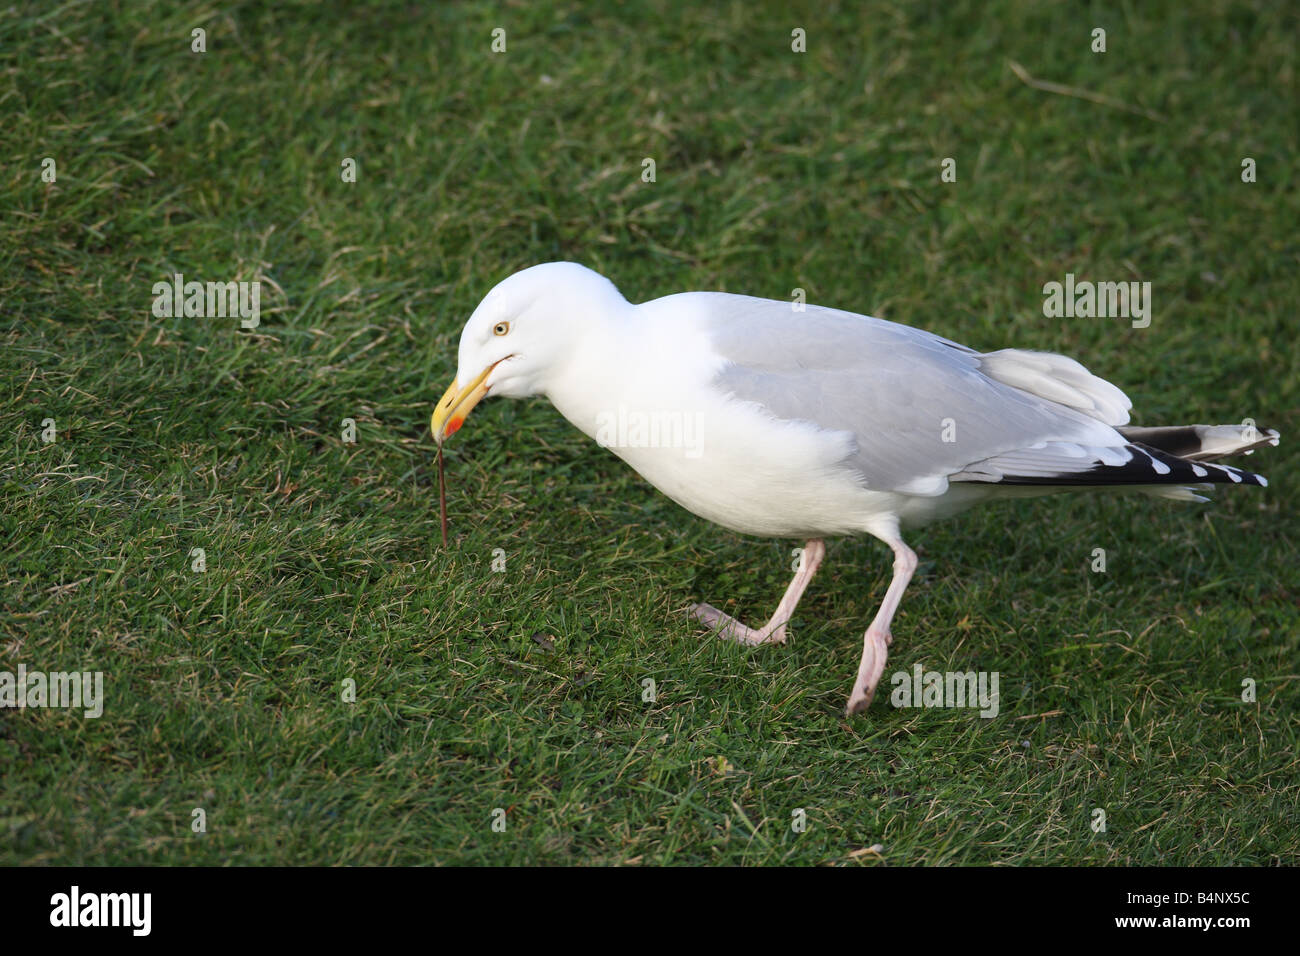 HERRING GULL Larus argentatus PULLING WORM FROM LAWN NORTH WALES FEB 08 - Stock Image